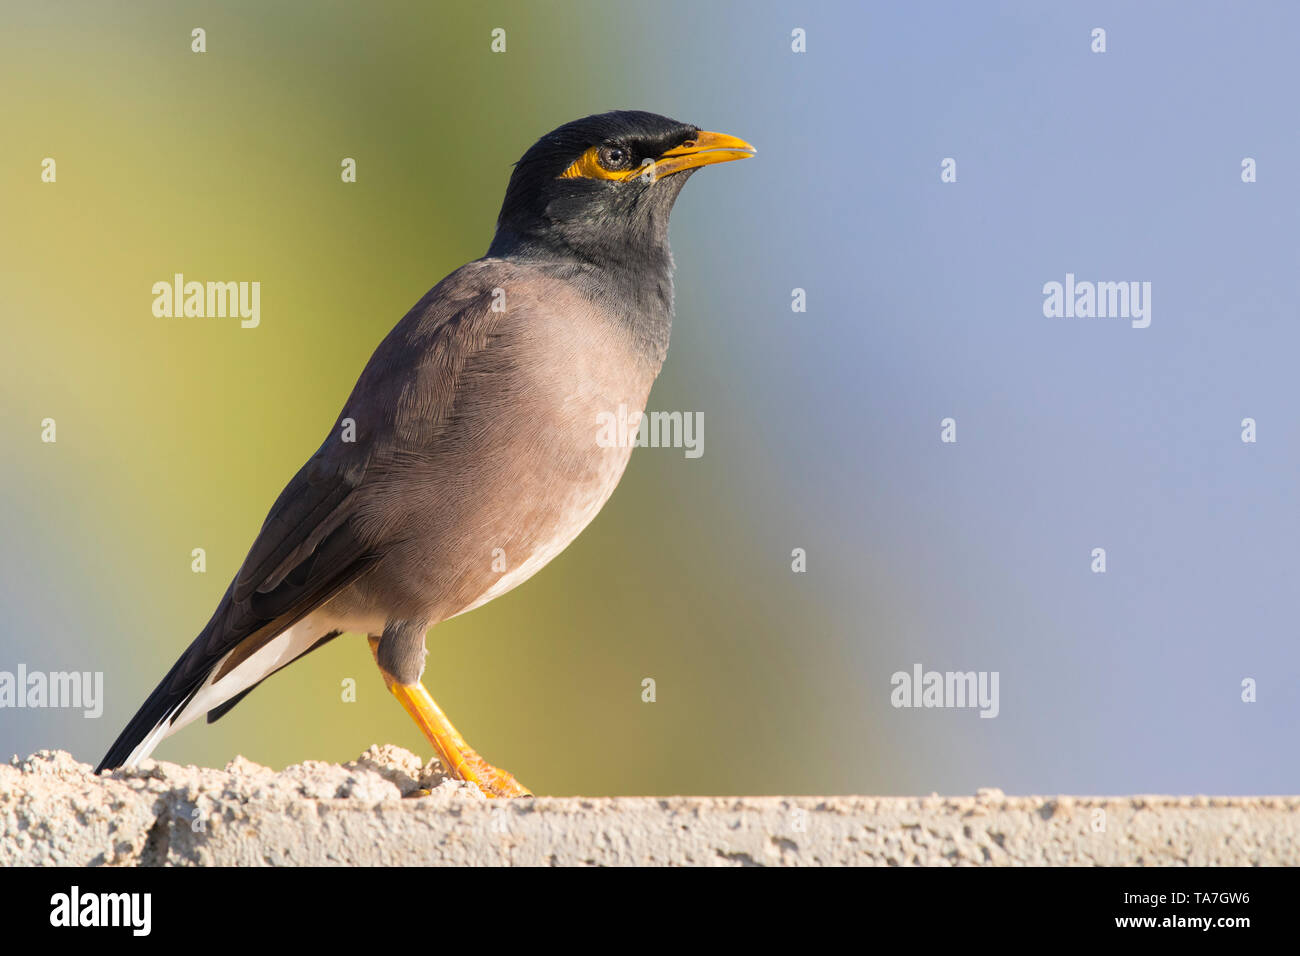 Common Myna (Acridotheres tristis), side view of an adult standing on a wall - Stock Image